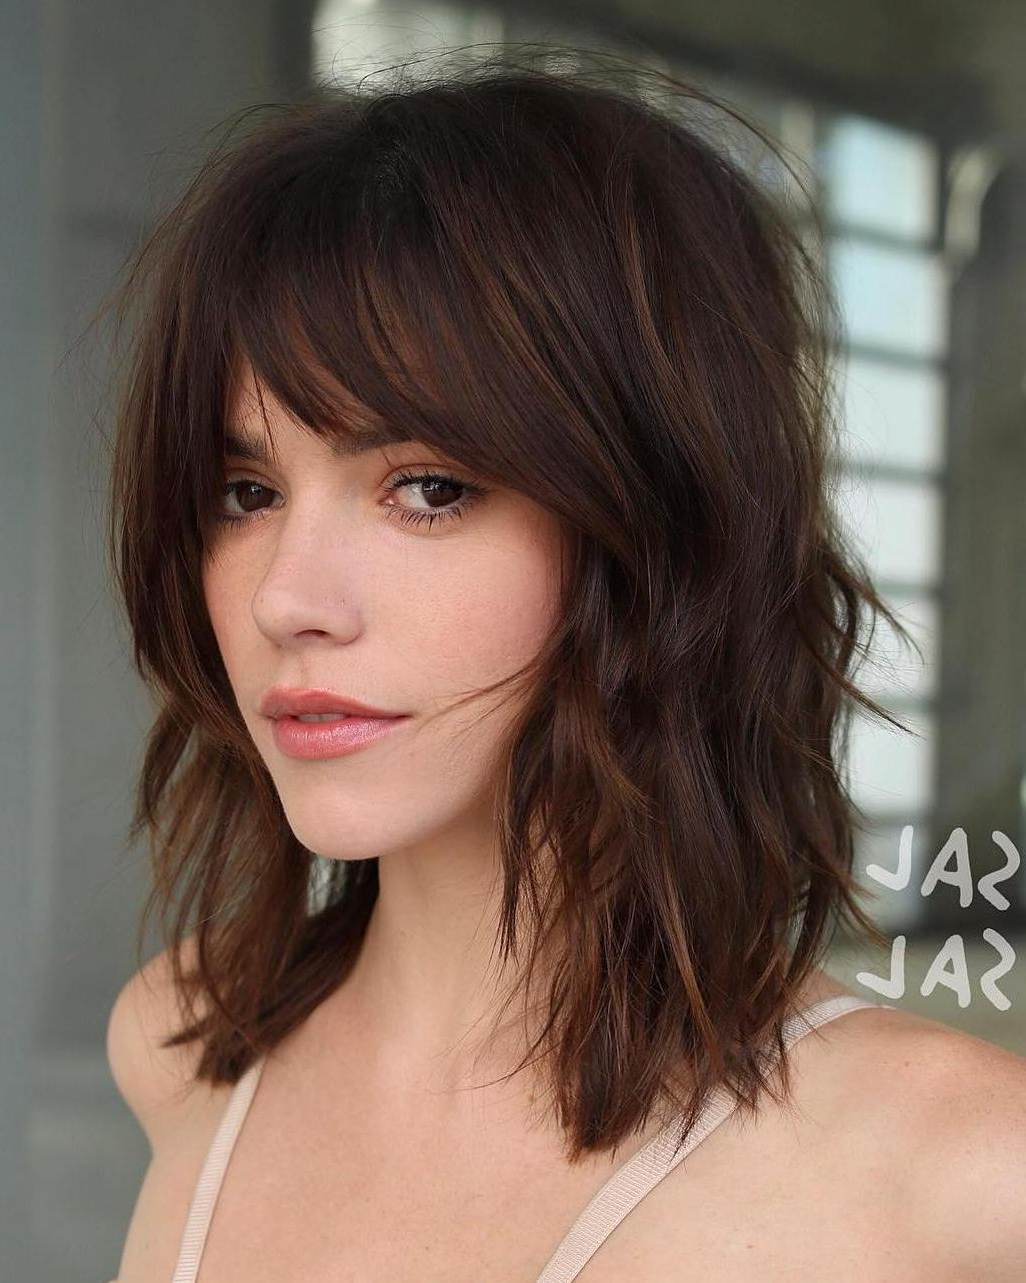 35 Killer Ways To Work Long Bob Haircuts For 2019 With Most Up To Date Shaggy Lob Hairstyles With Bangs (Gallery 7 of 20)